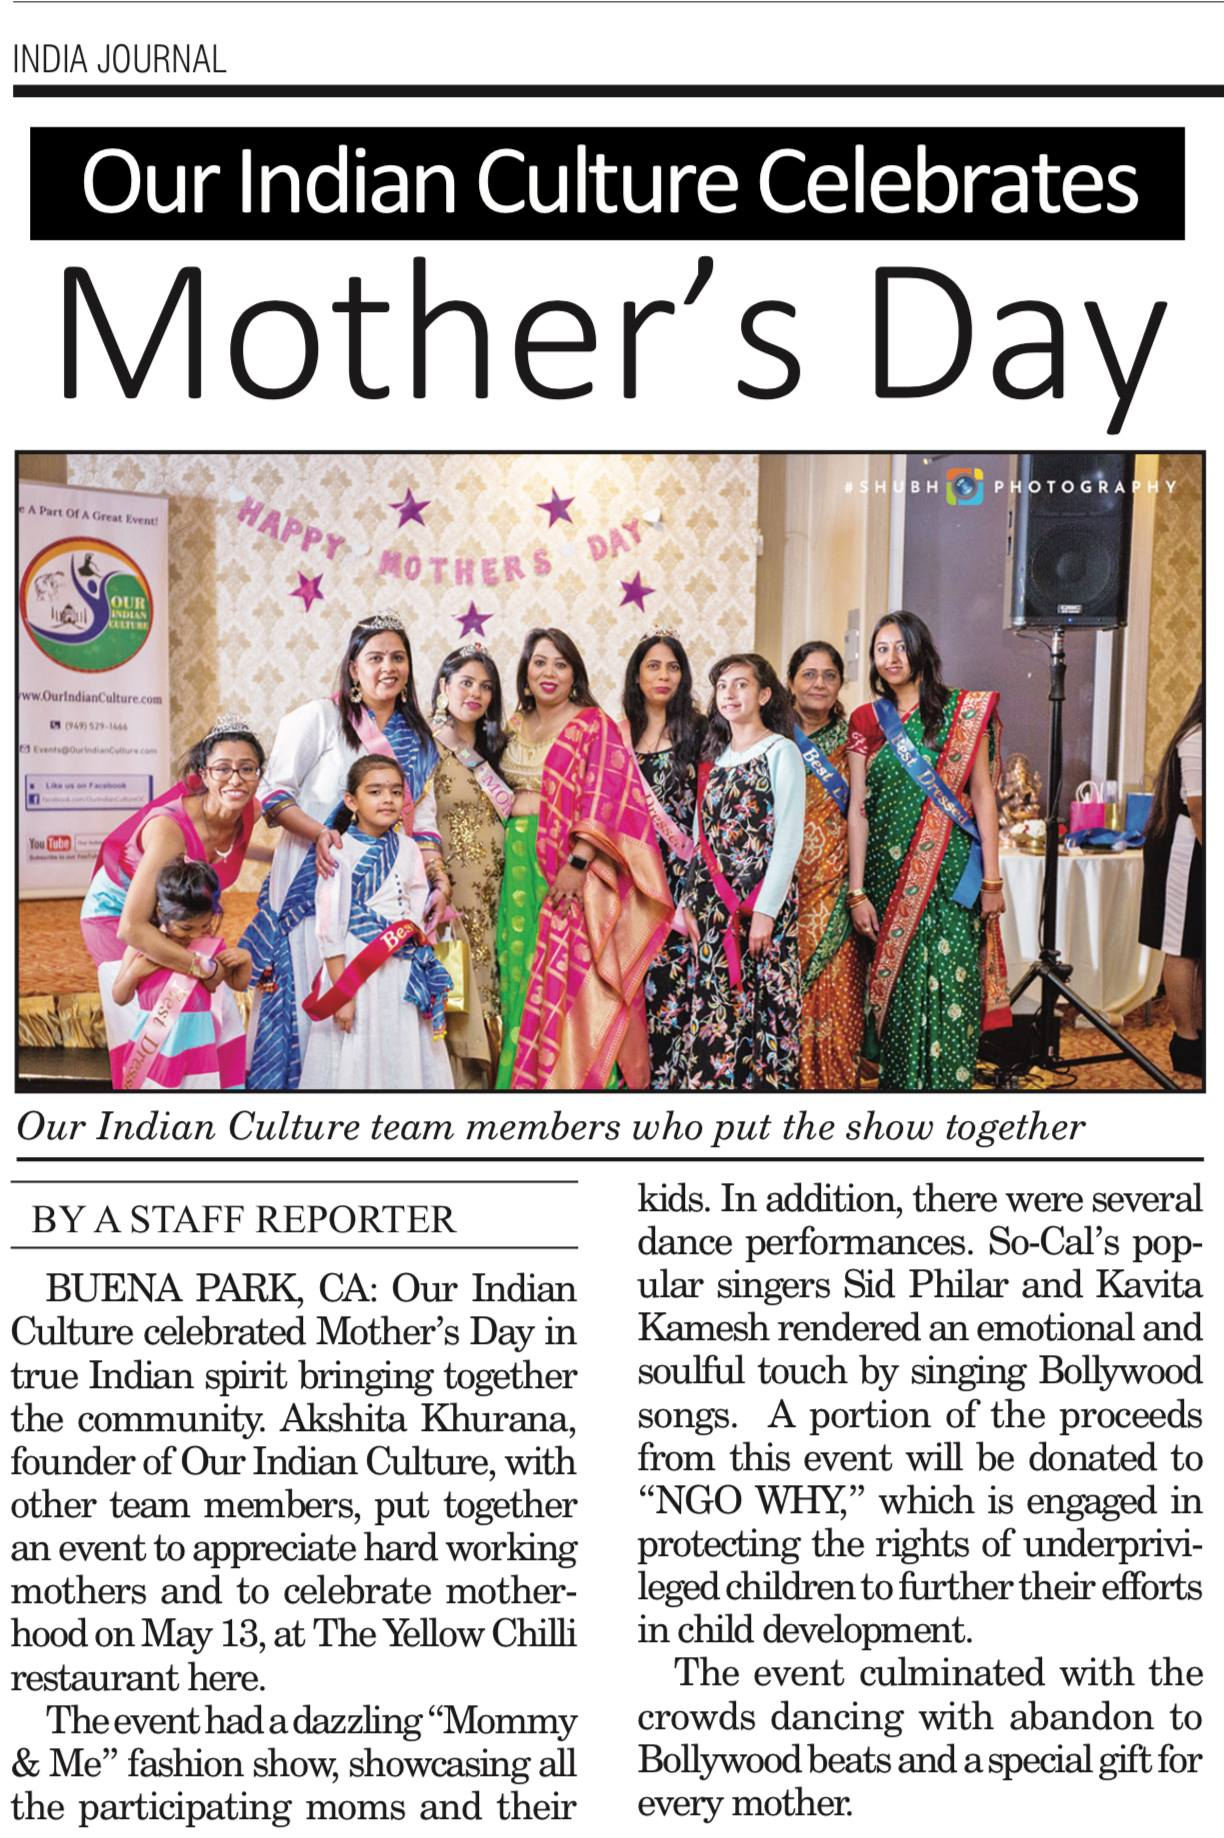 Mother's Day Celebration Event 2018 organized by Our Indian Culture in Buena Park, CA at The Yellow Chilli